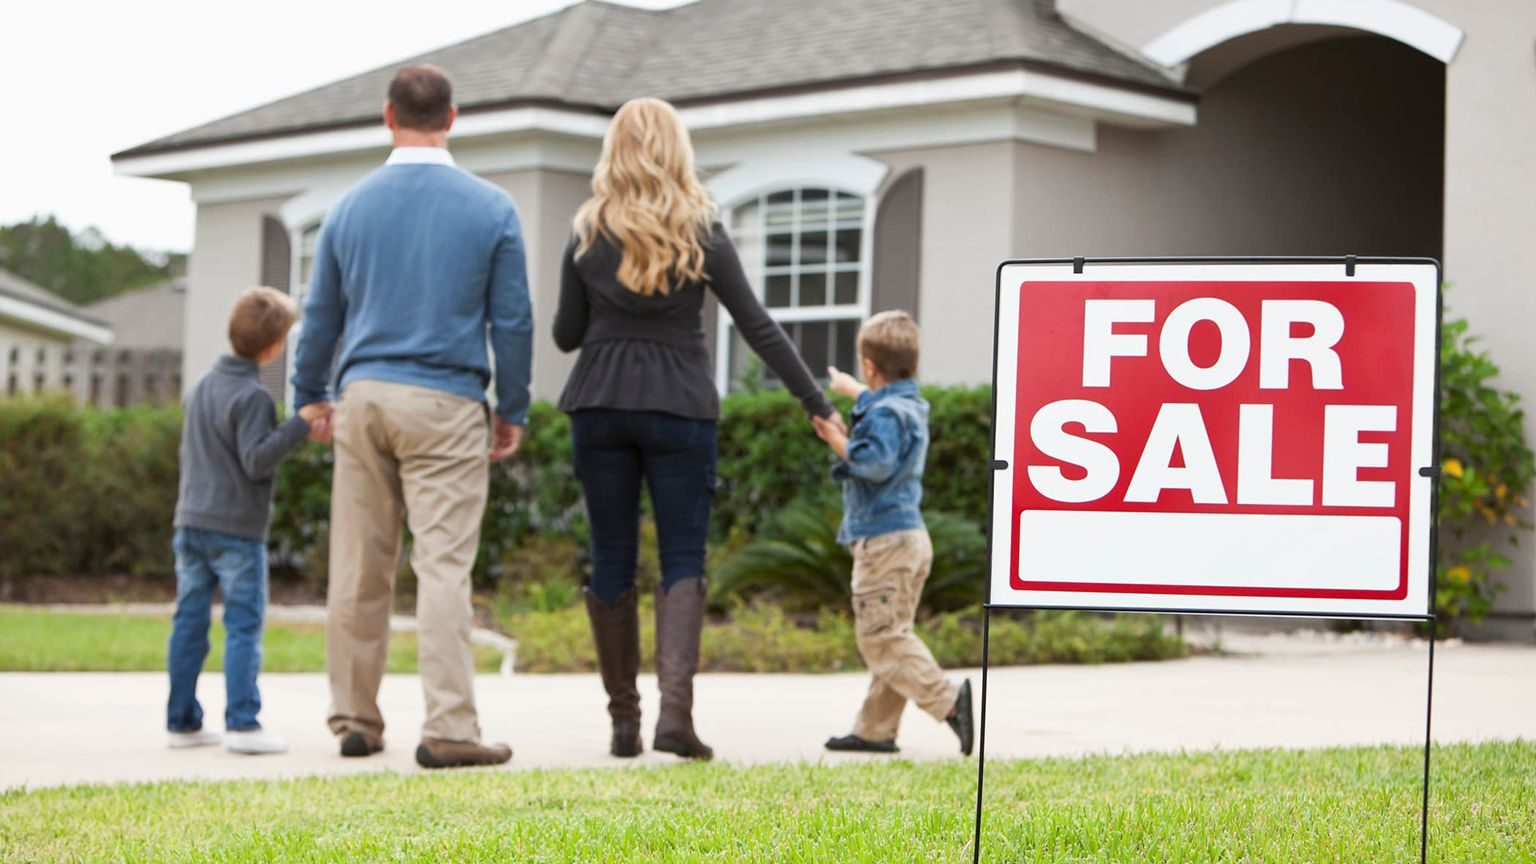 Family with two boys standing in front of house with for sale sign in front yard